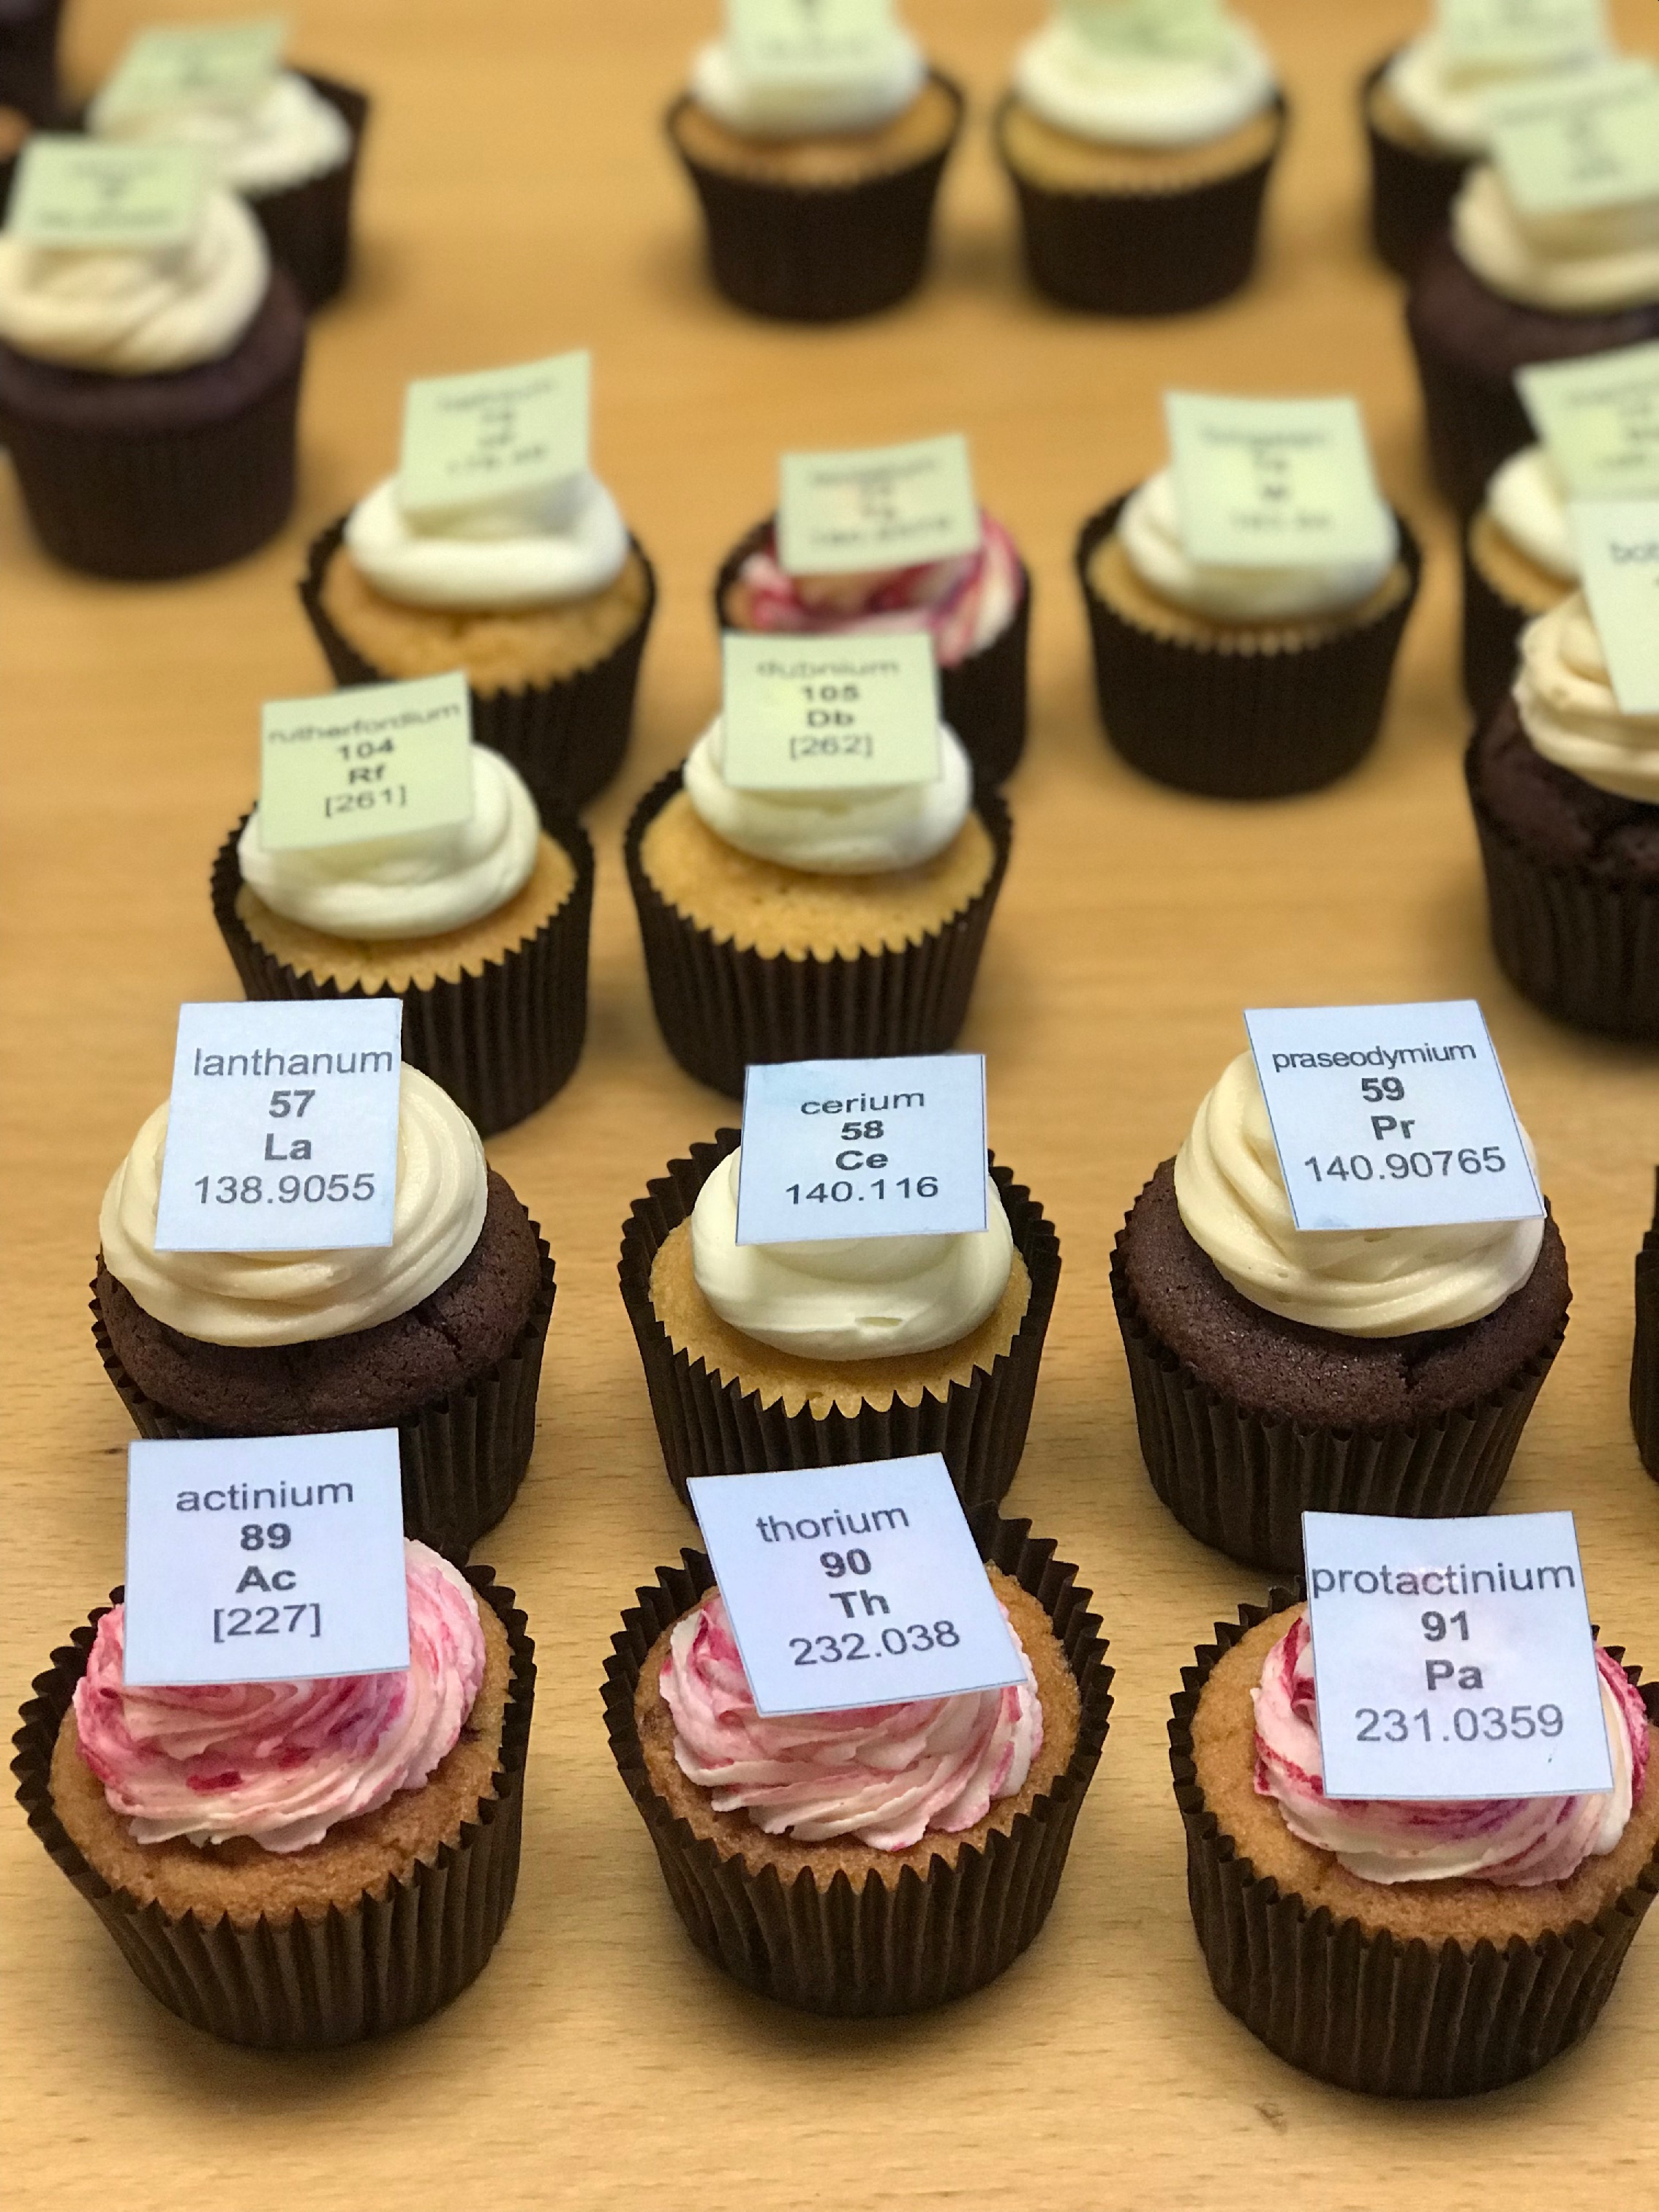 Fileperiodic table cupcakes at ada lovelace day 2017 kings fileperiodic table cupcakes at ada lovelace day 2017 kings buildings university of gamestrikefo Choice Image